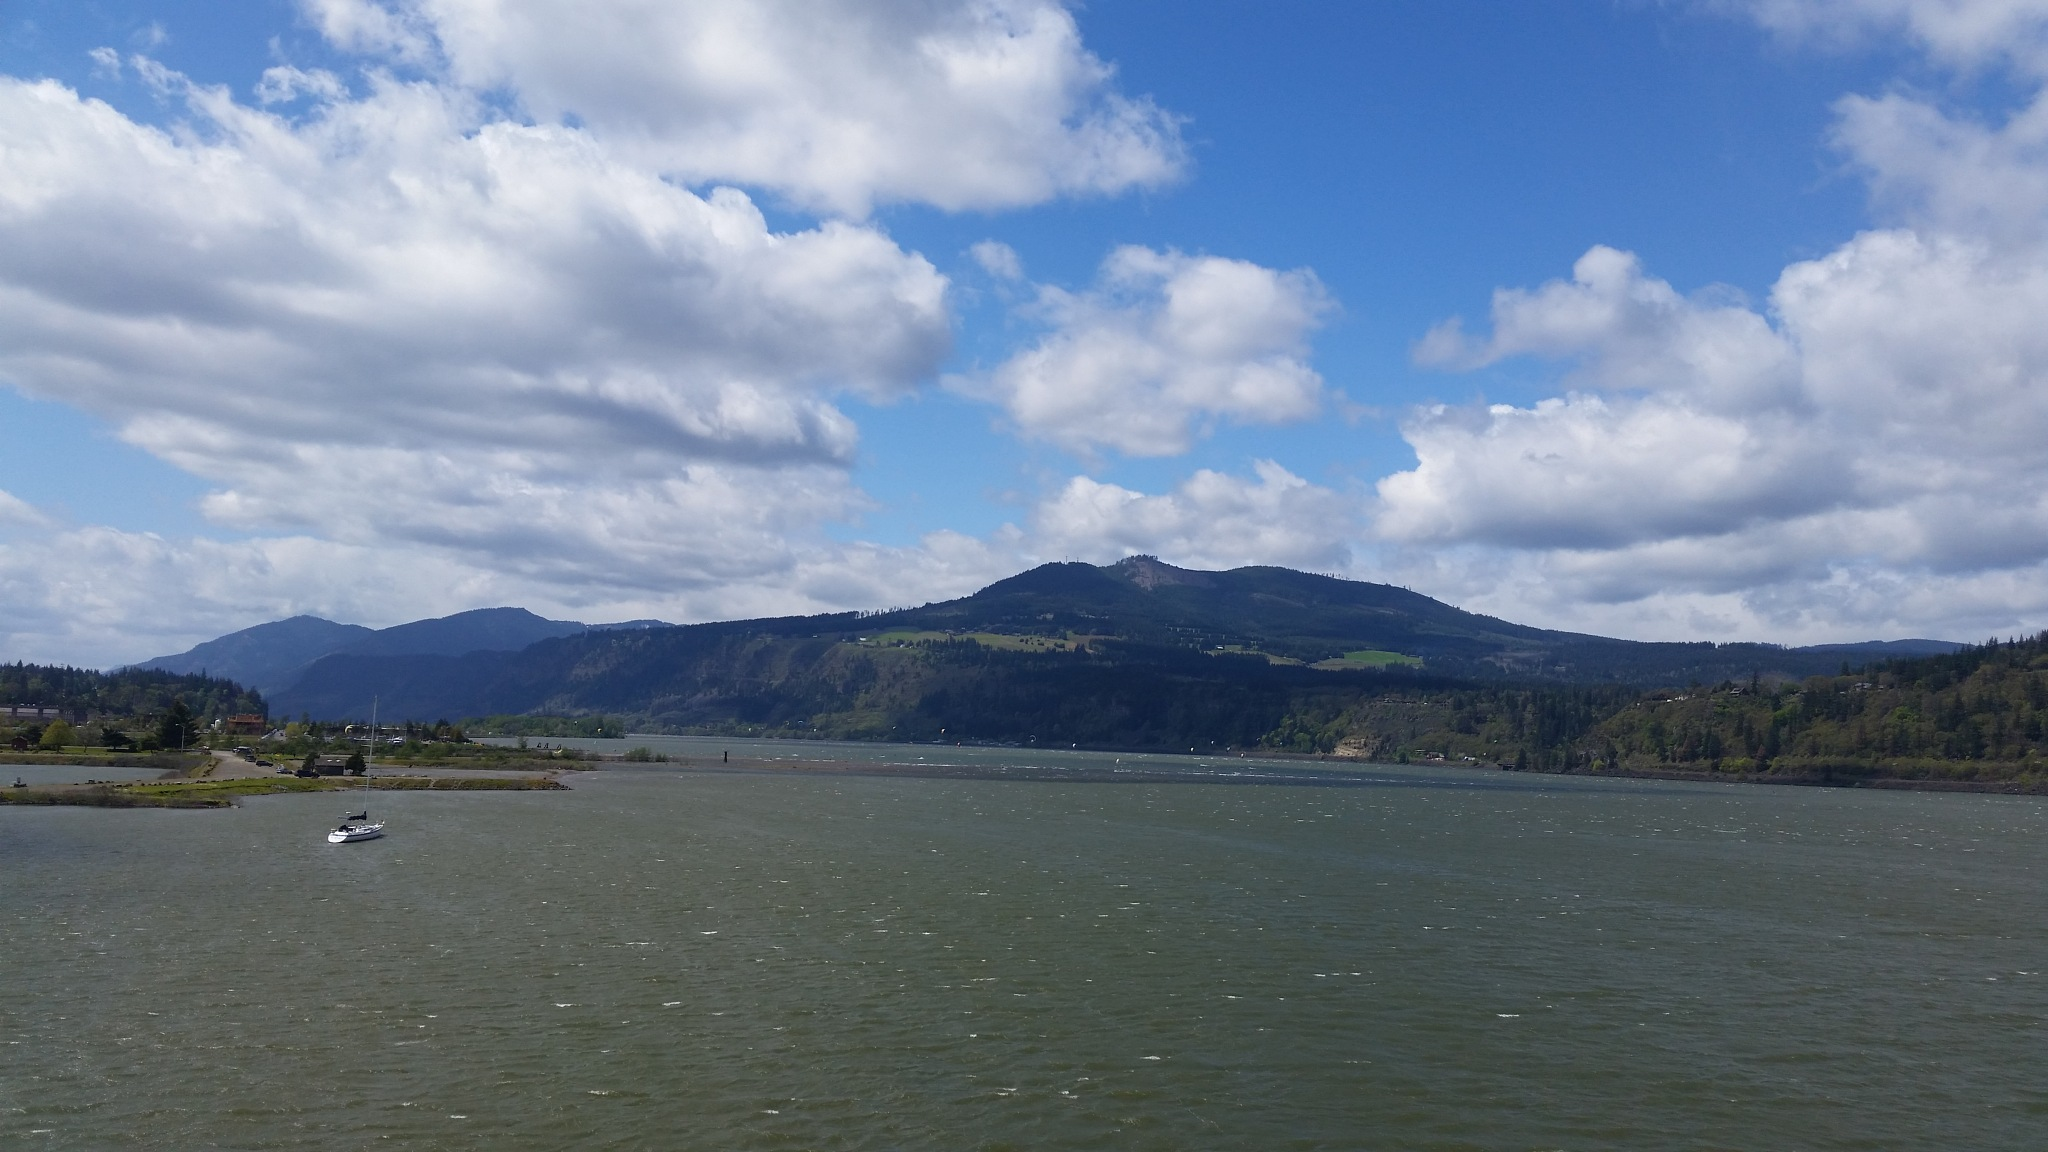 Columbia River Gorge View From the Hood River Bridge in Oregon by B56